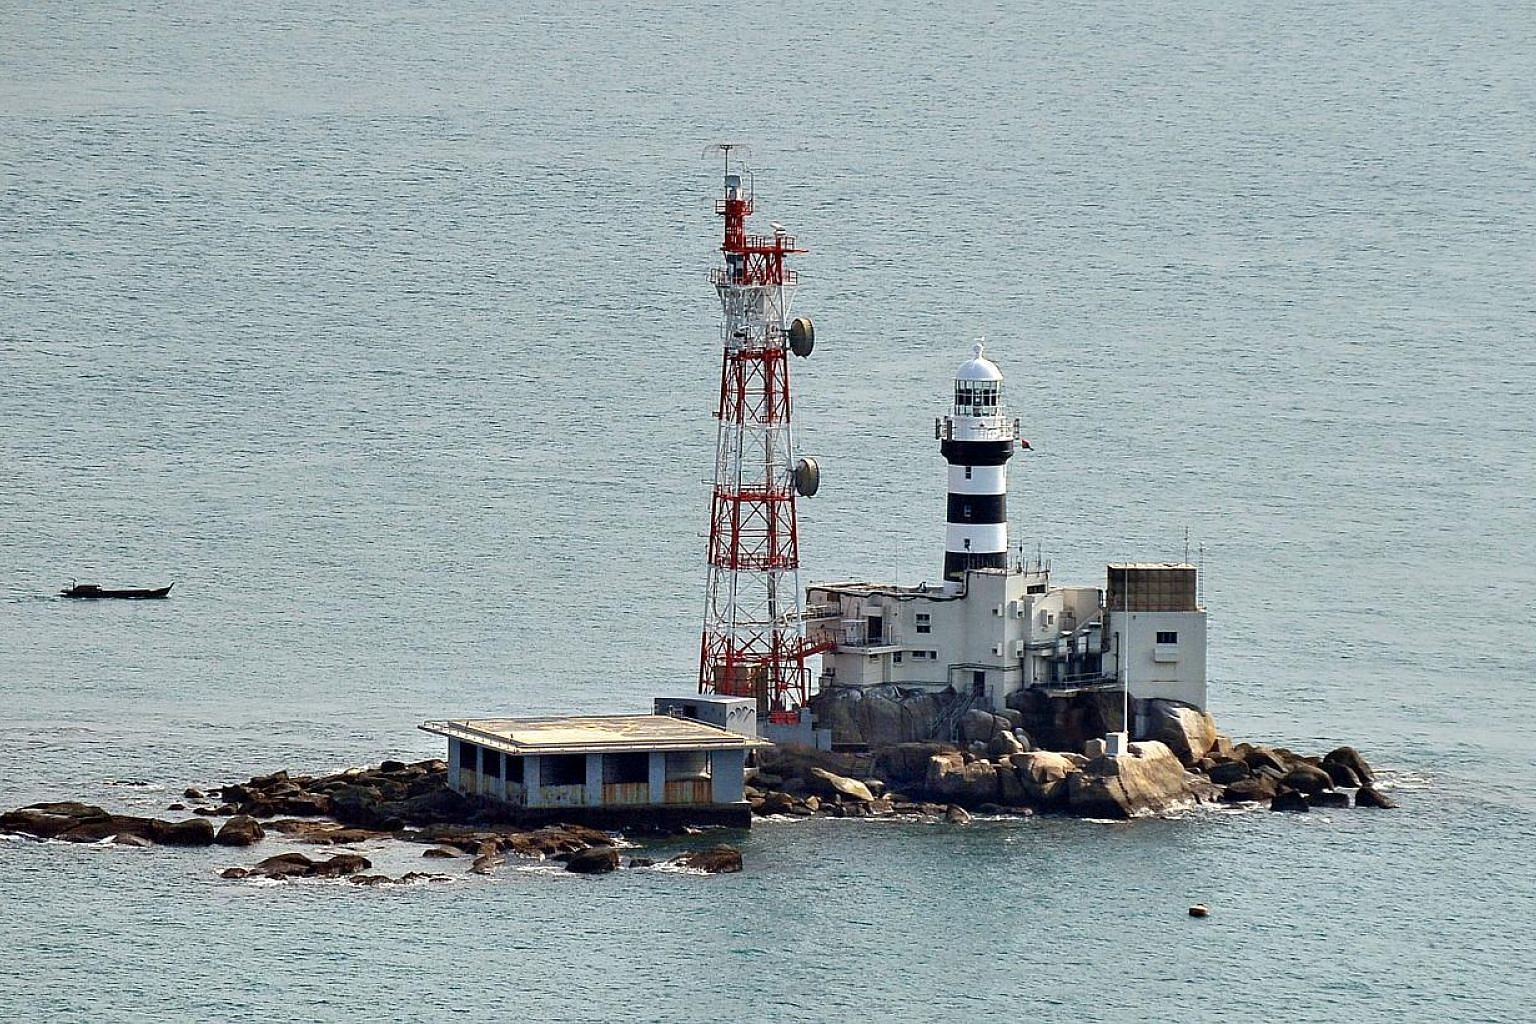 A barge that capsized with 15 crew on board in waters near Pedra Branca lighthouse (pictured) was towed to shore on Thursday, May 21, 2015, even as the search for missing crew members continues.  -- PHOTO: ST FILE